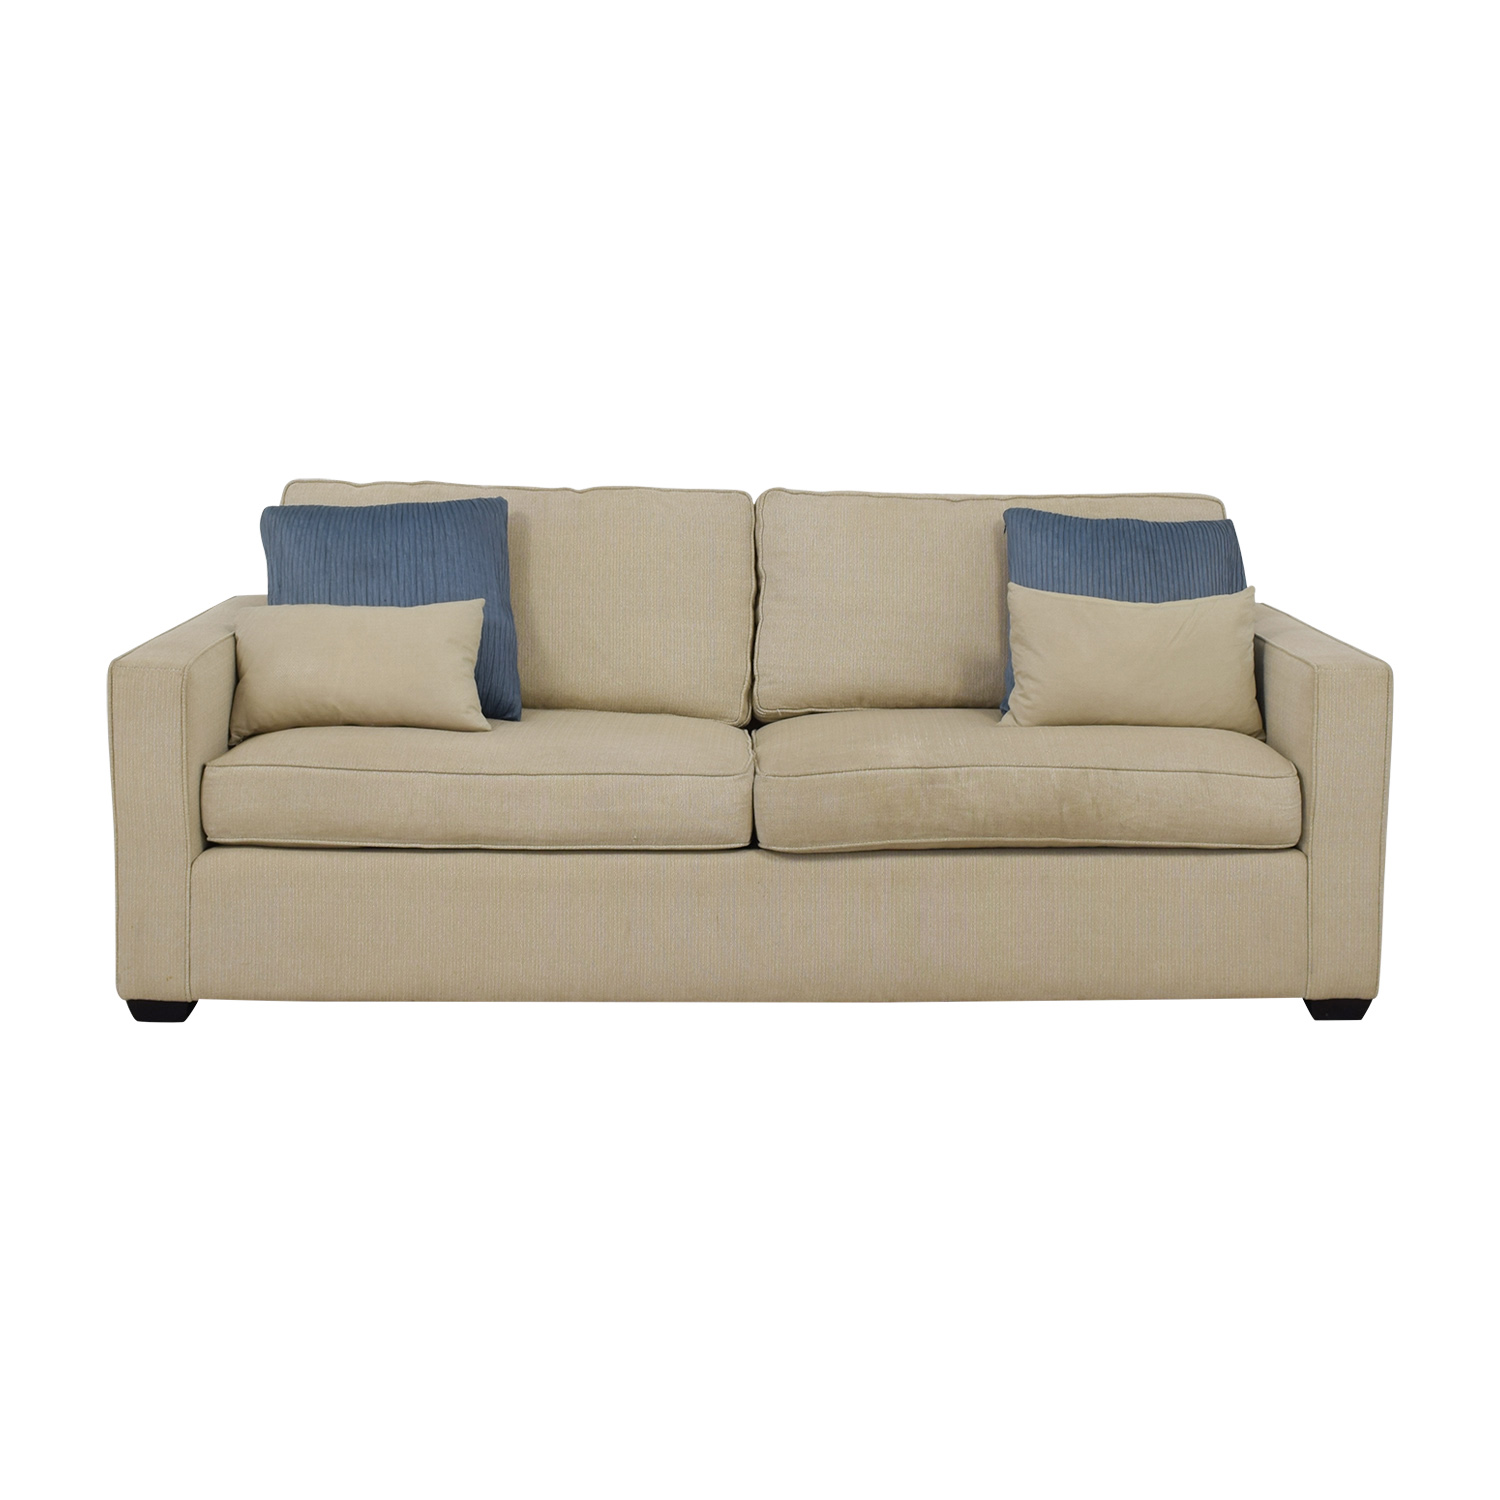 Room & Board Room & Board Dublin Beige Two-Cushion Sofa on sale